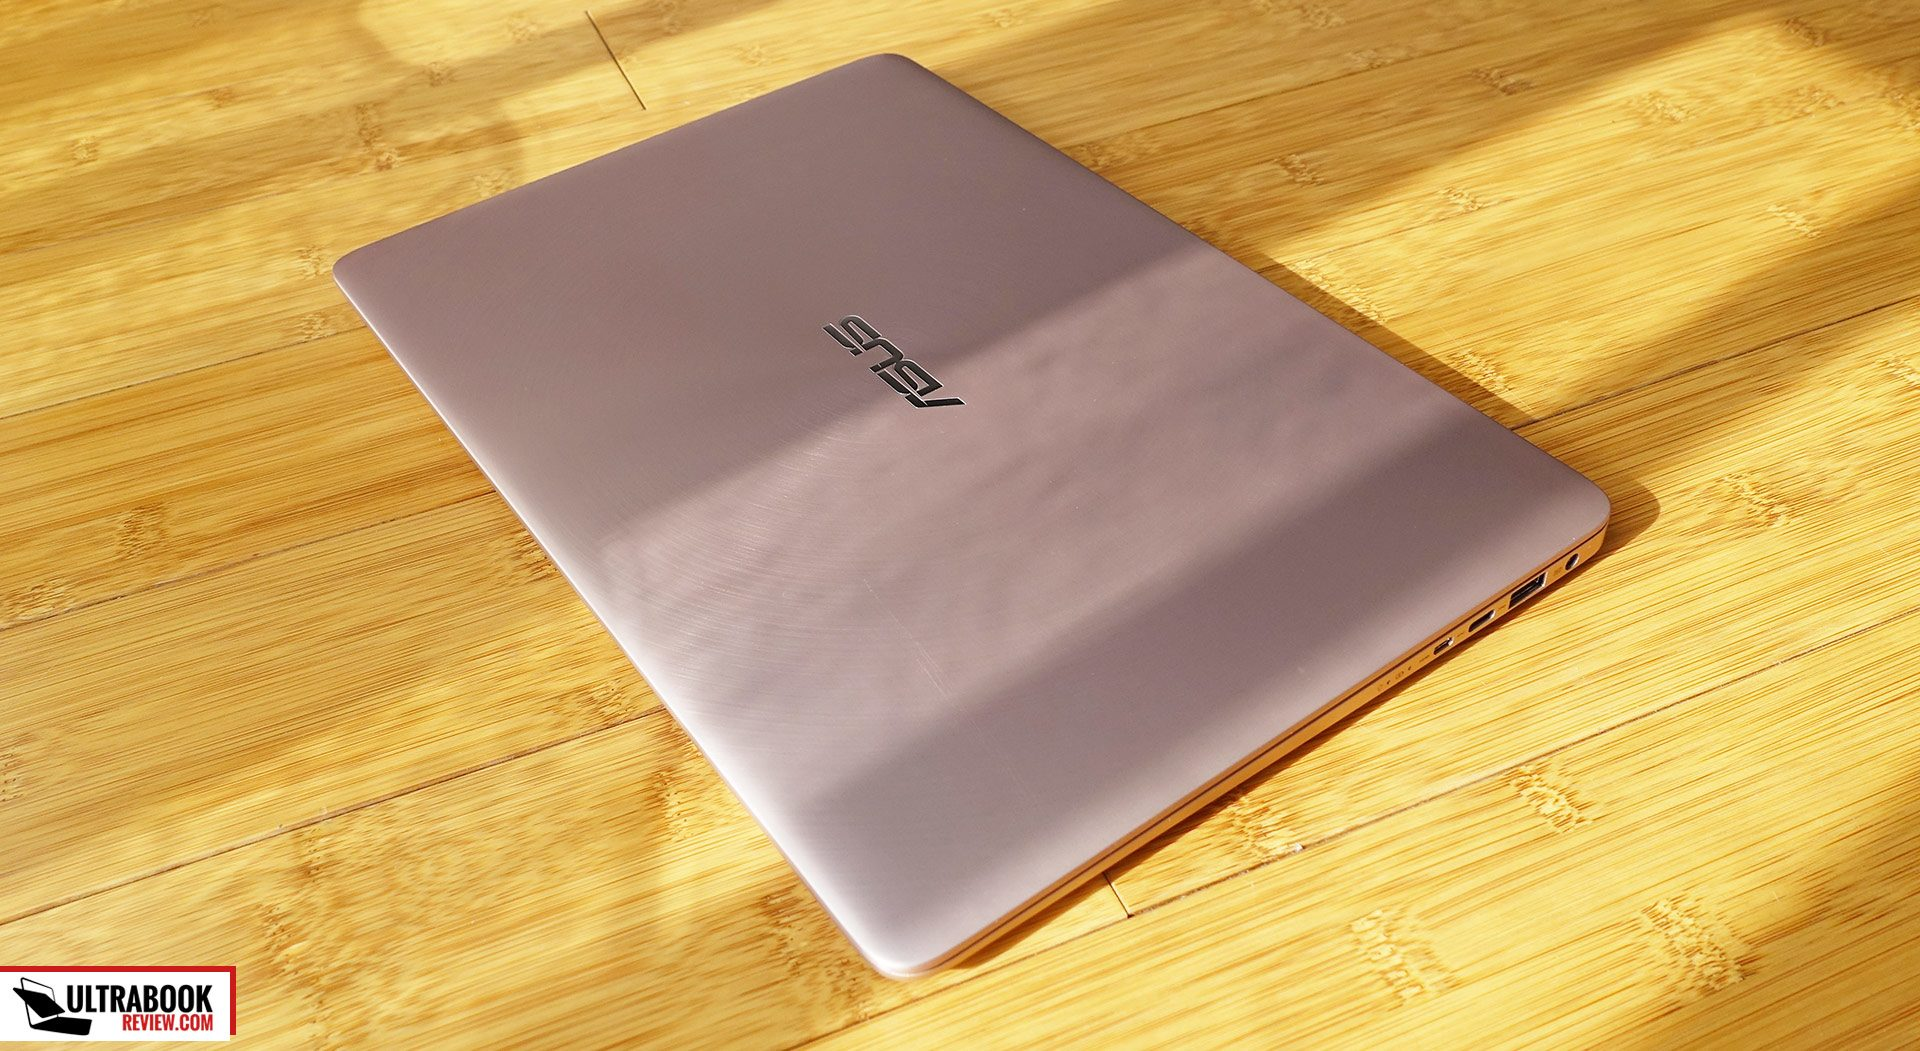 Asus Zenbook Ux330ua Review Premium 13 Incher For The